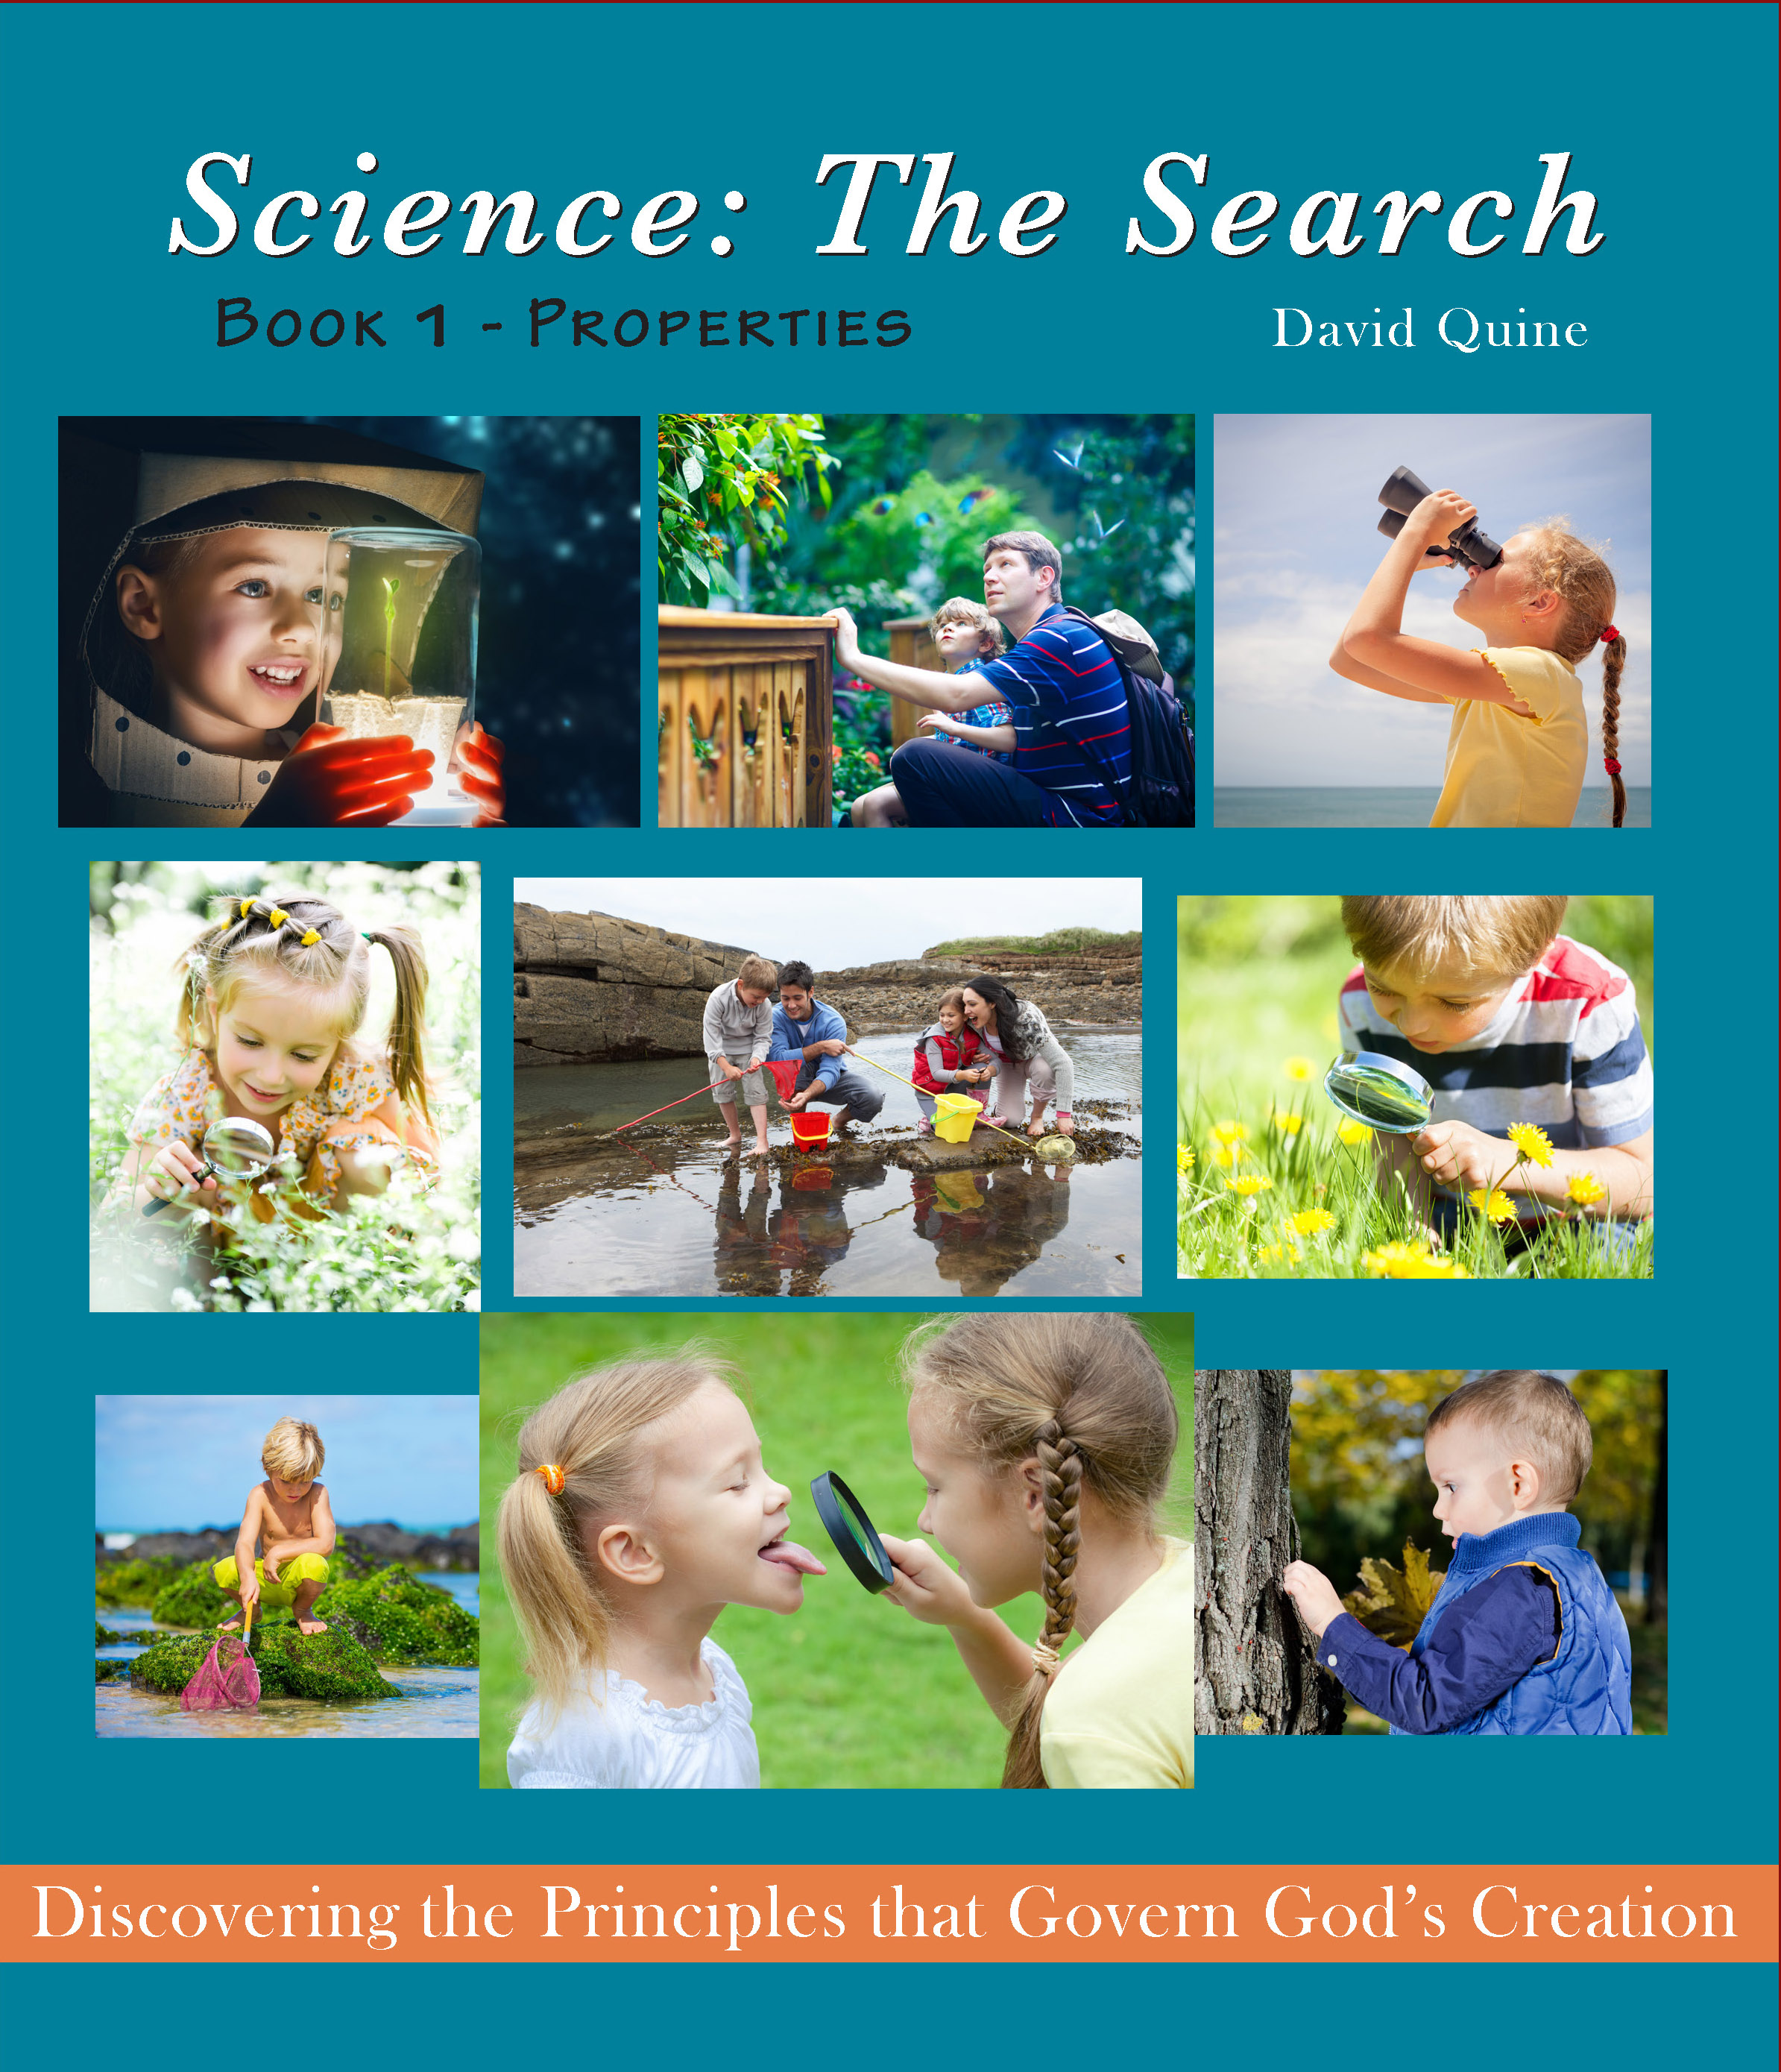 Science: The Search